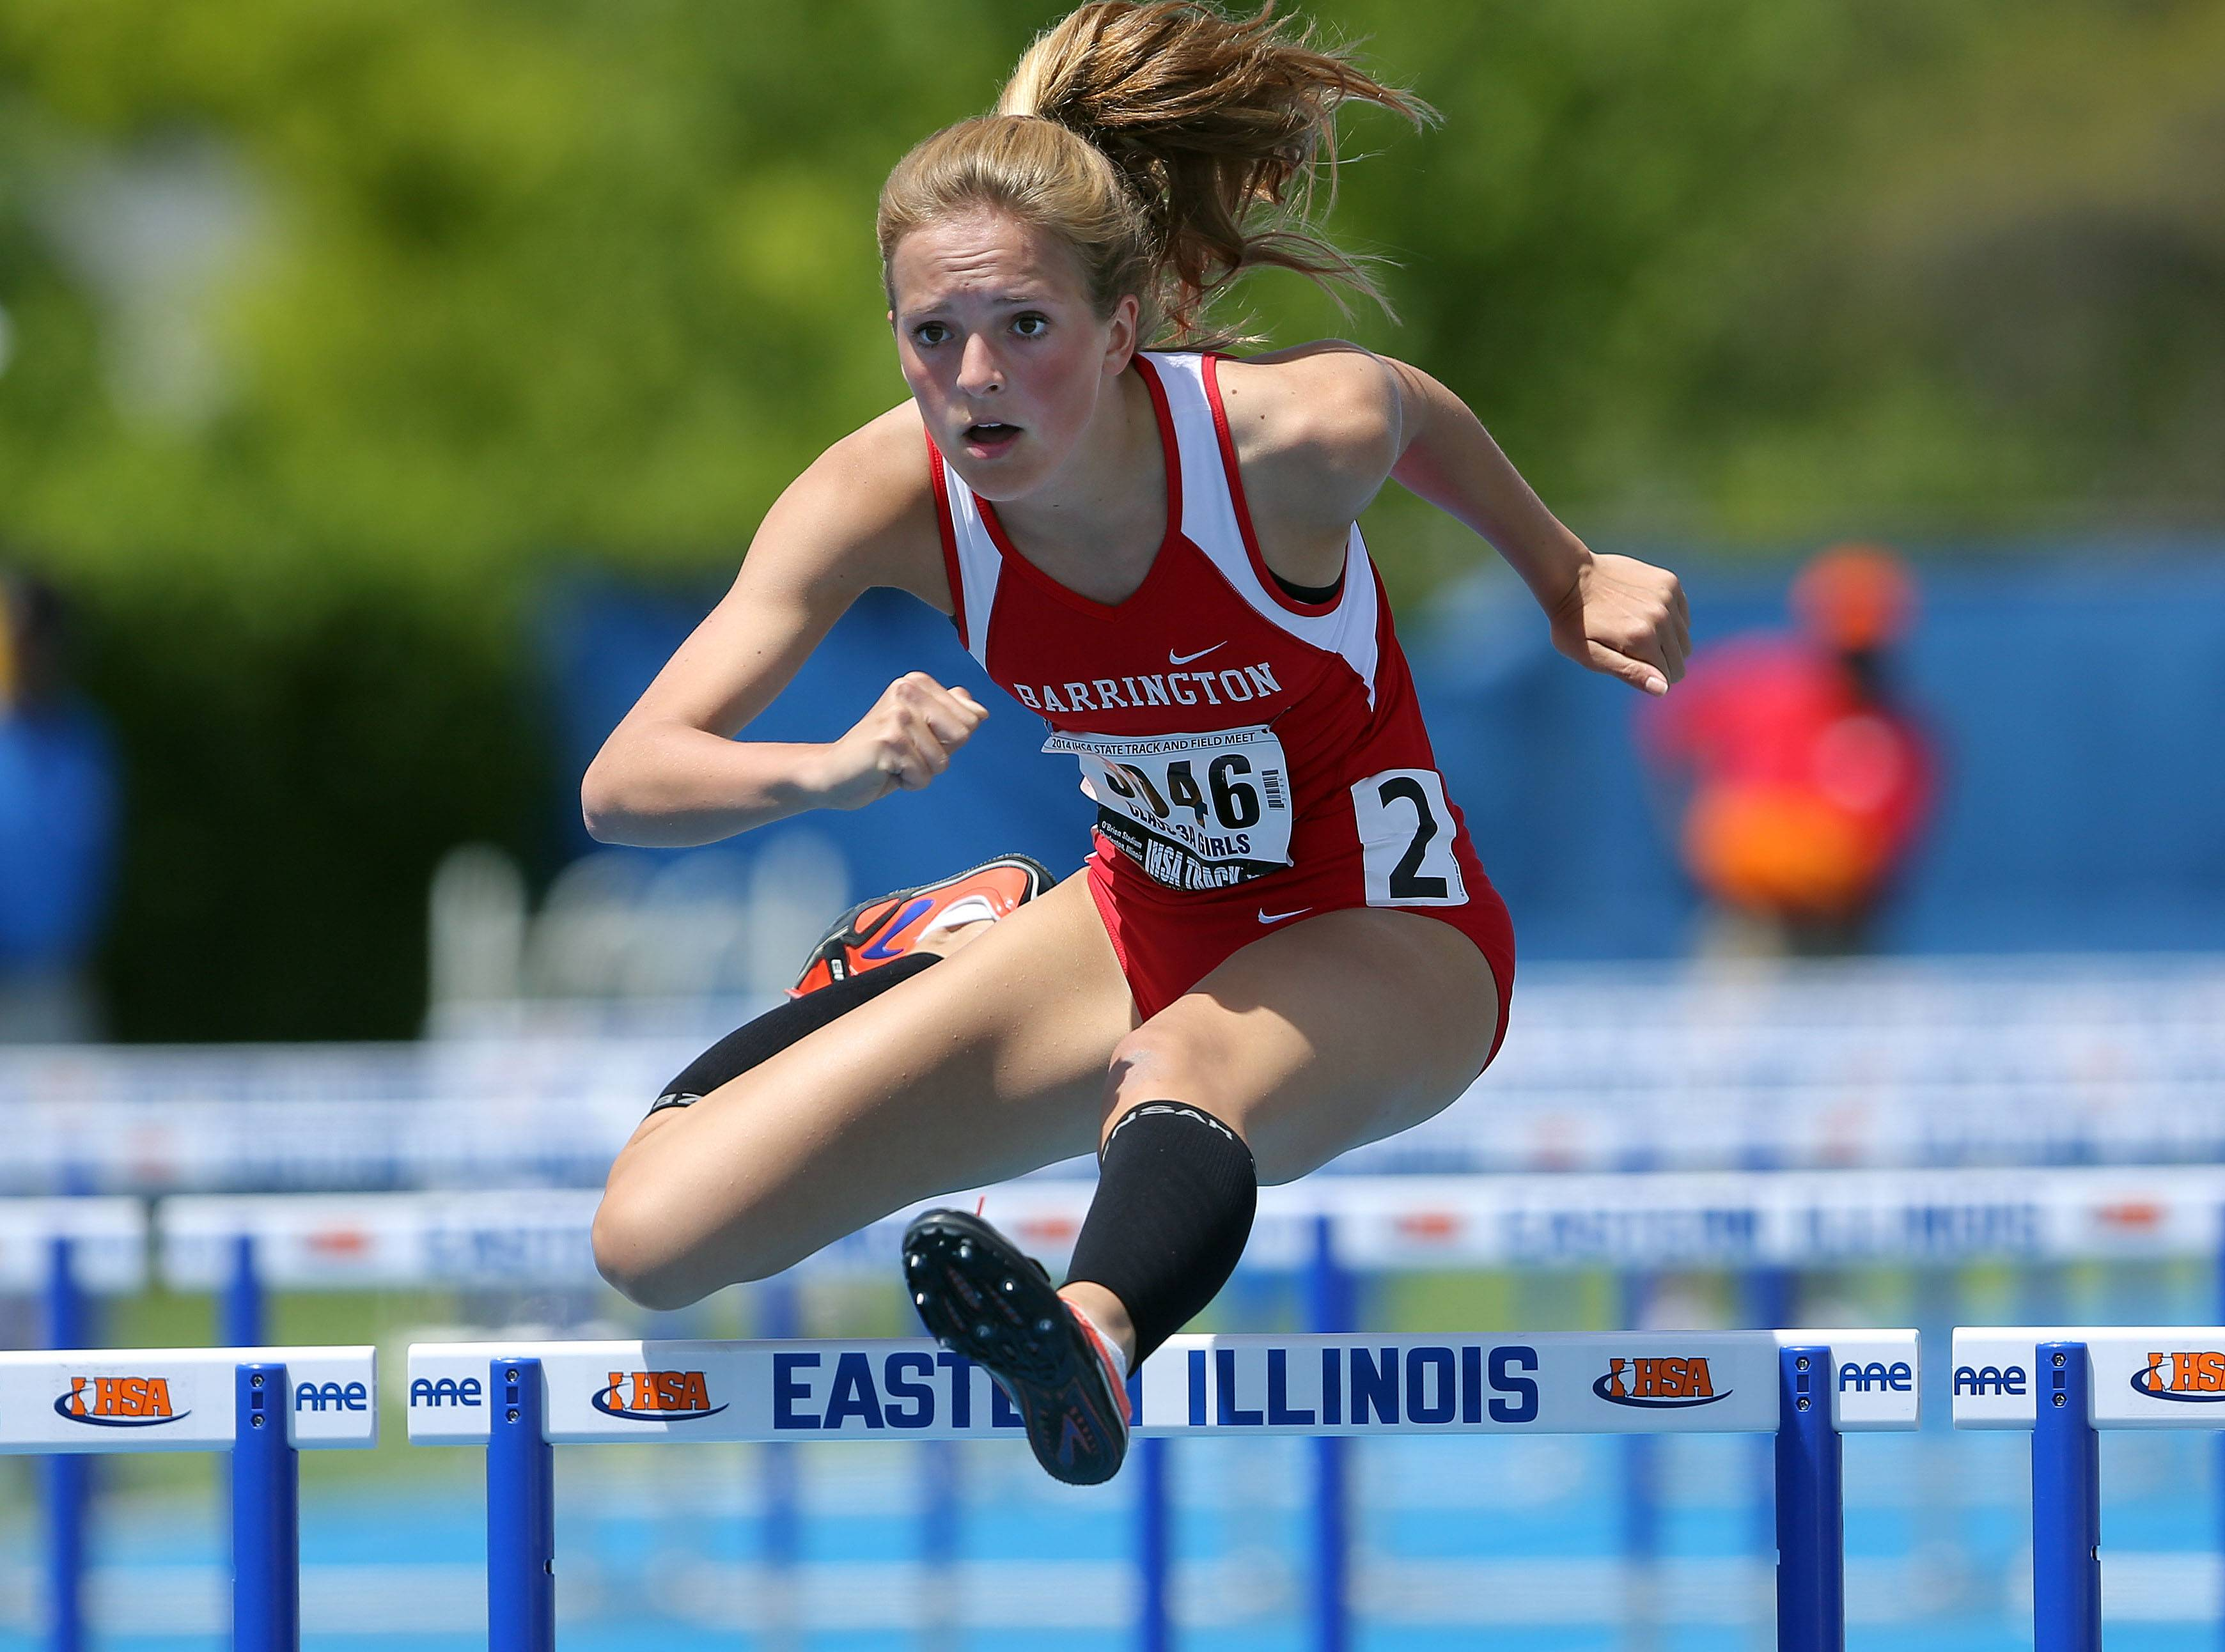 Barrington's McCall Braun competes in the 100-meter high hurdles during the Class 3A prelims of the girls track and field state meet at Eastern Illinois University in Charleston on Friday.